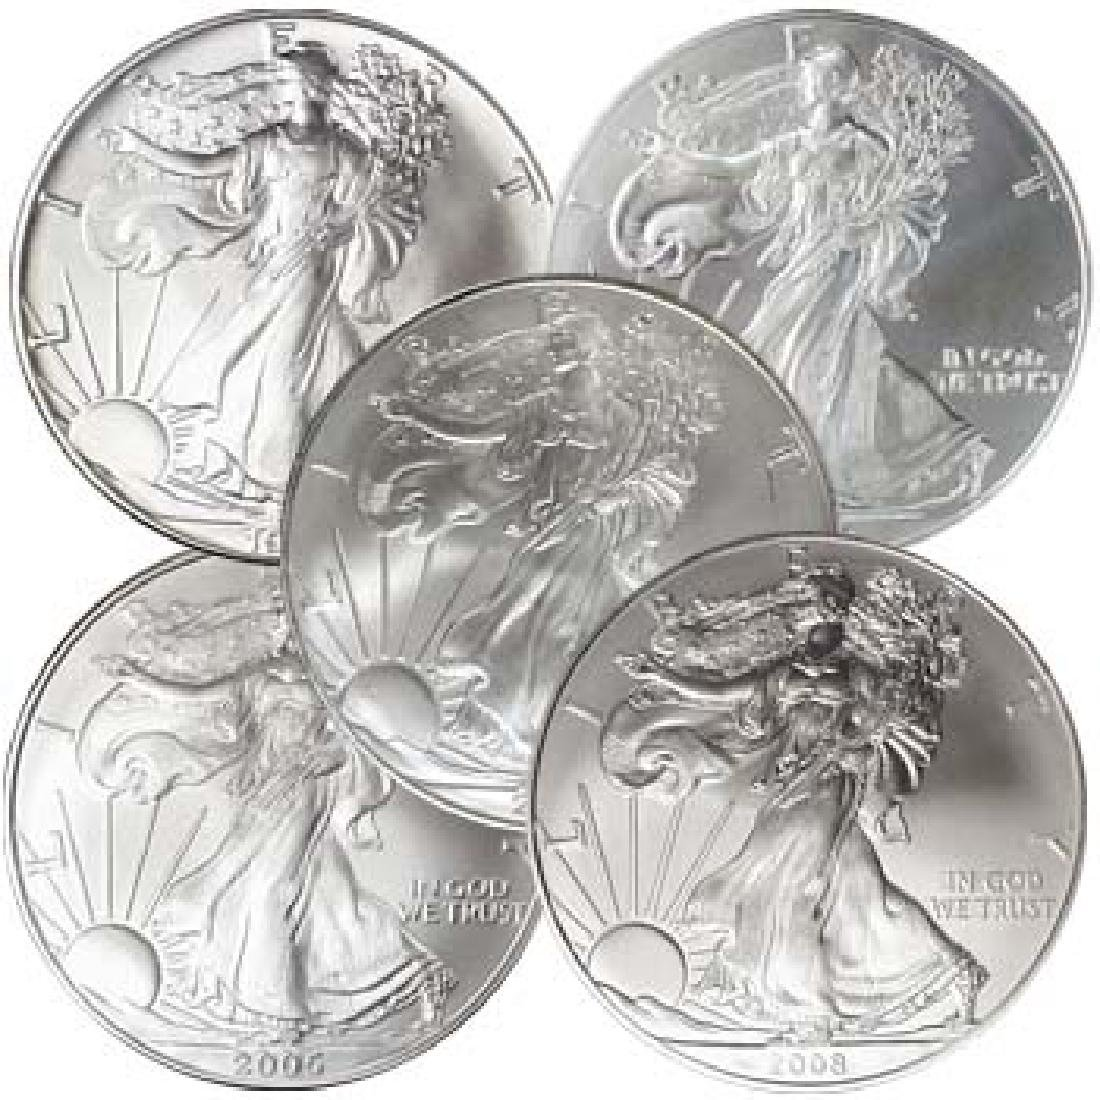 1-oz. Silver Eagle 5 Bullion Coins, BU